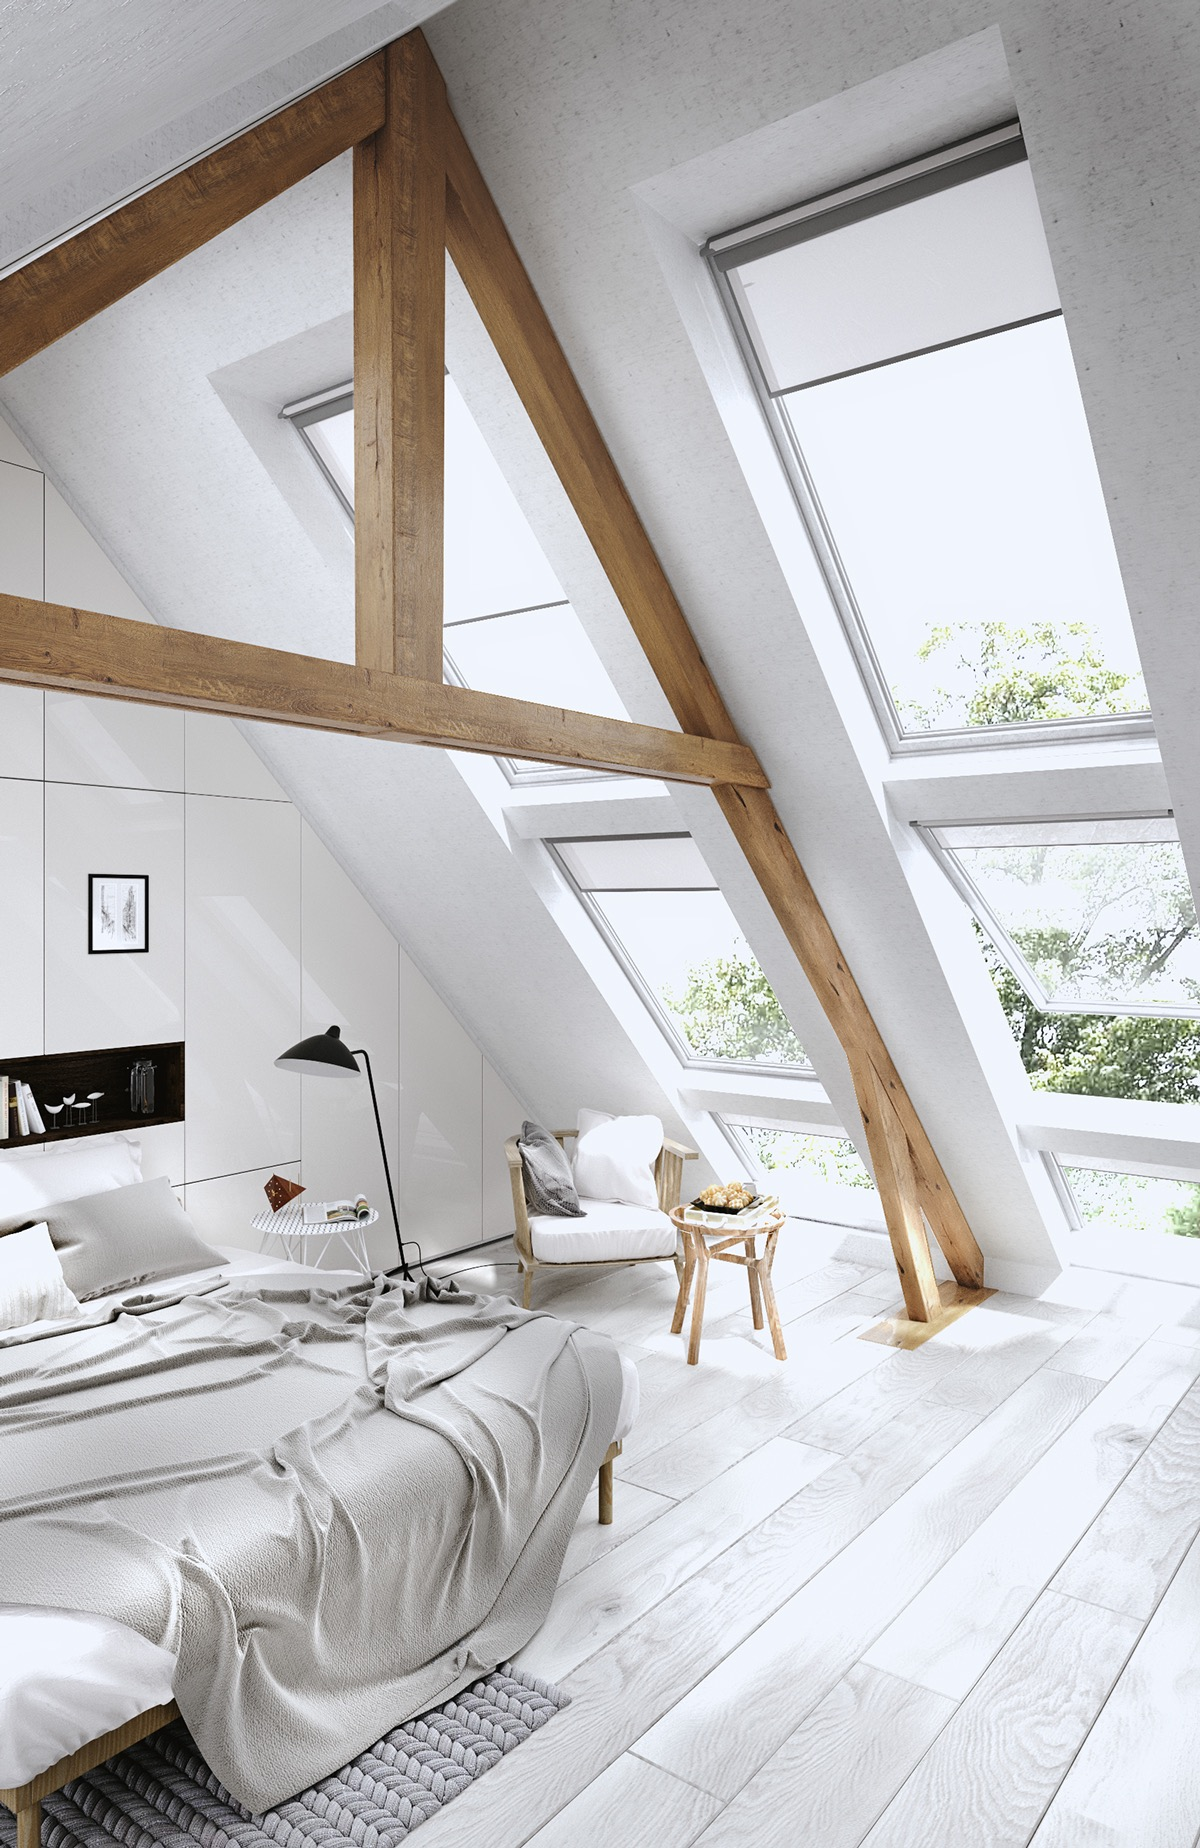 25 amazing attic bedrooms that you would absolutely enjoy sleeping in rh home designing com